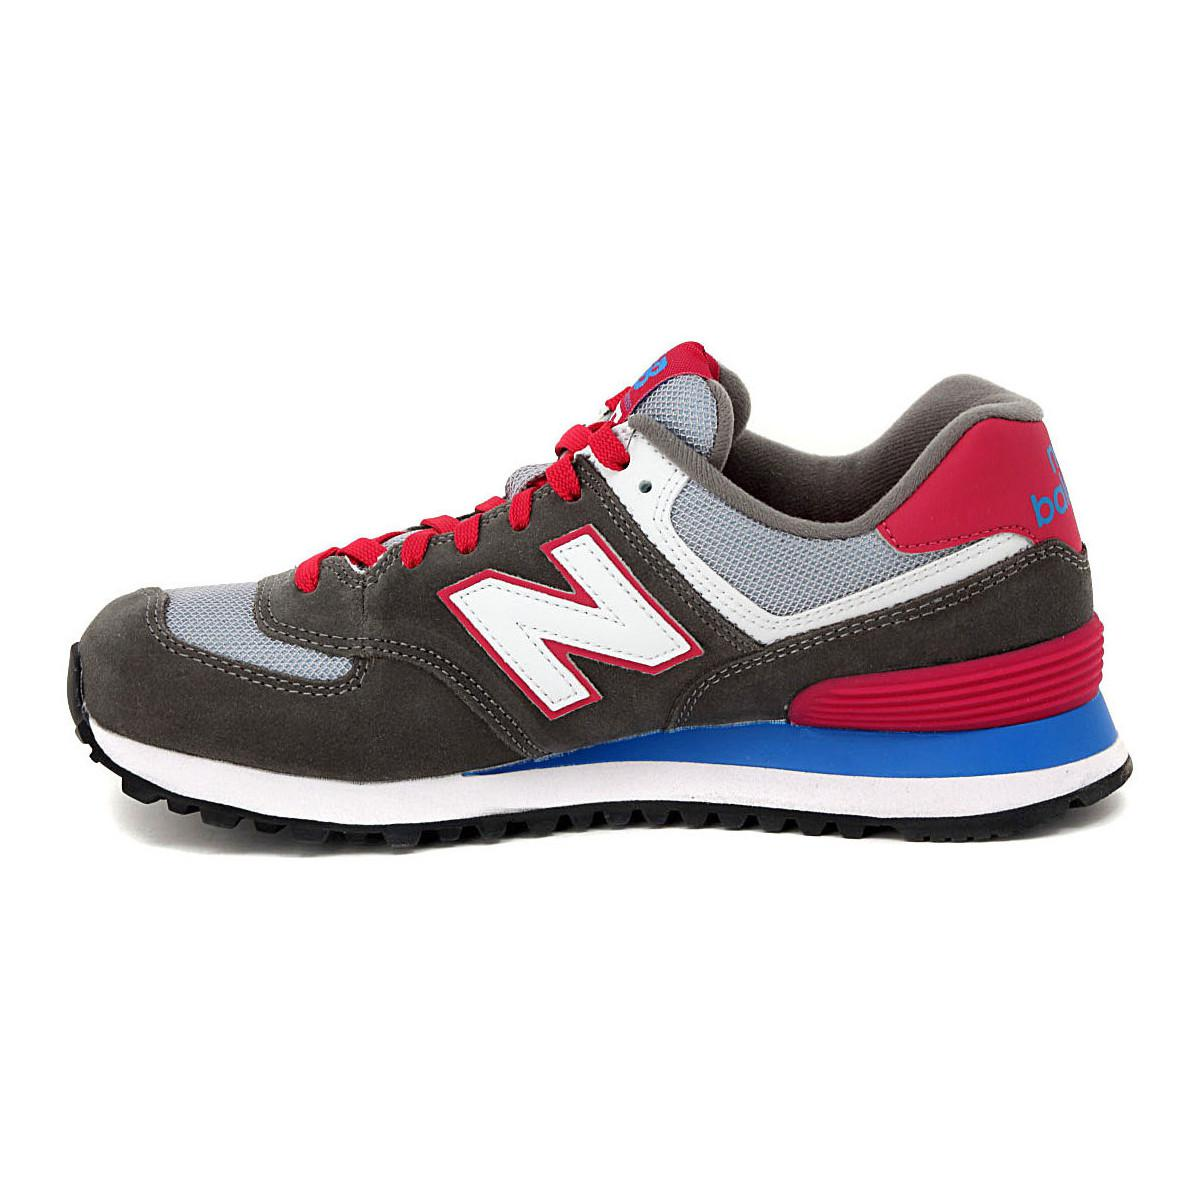 ... low priced 800f1 58cf3 New Balance Wl 574 Cpw Womens Shoes (trainers)  In Multicolou ... 47a1c51091